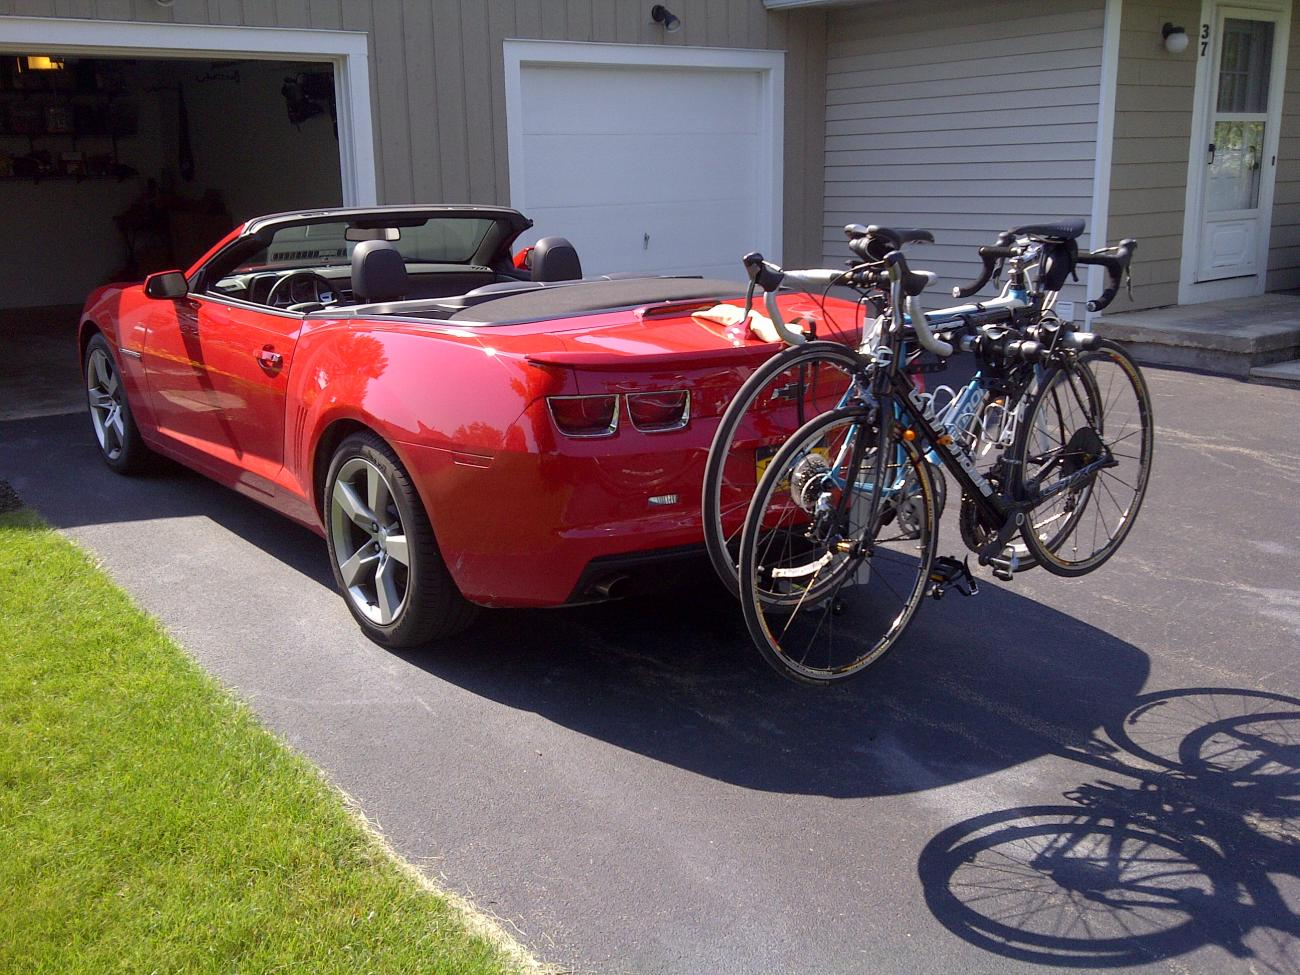 Bike Rack Or Roof Rack Page 7 Camaro5 Chevy Camaro Forum Camaro Zl1 Ss And V6 Forums